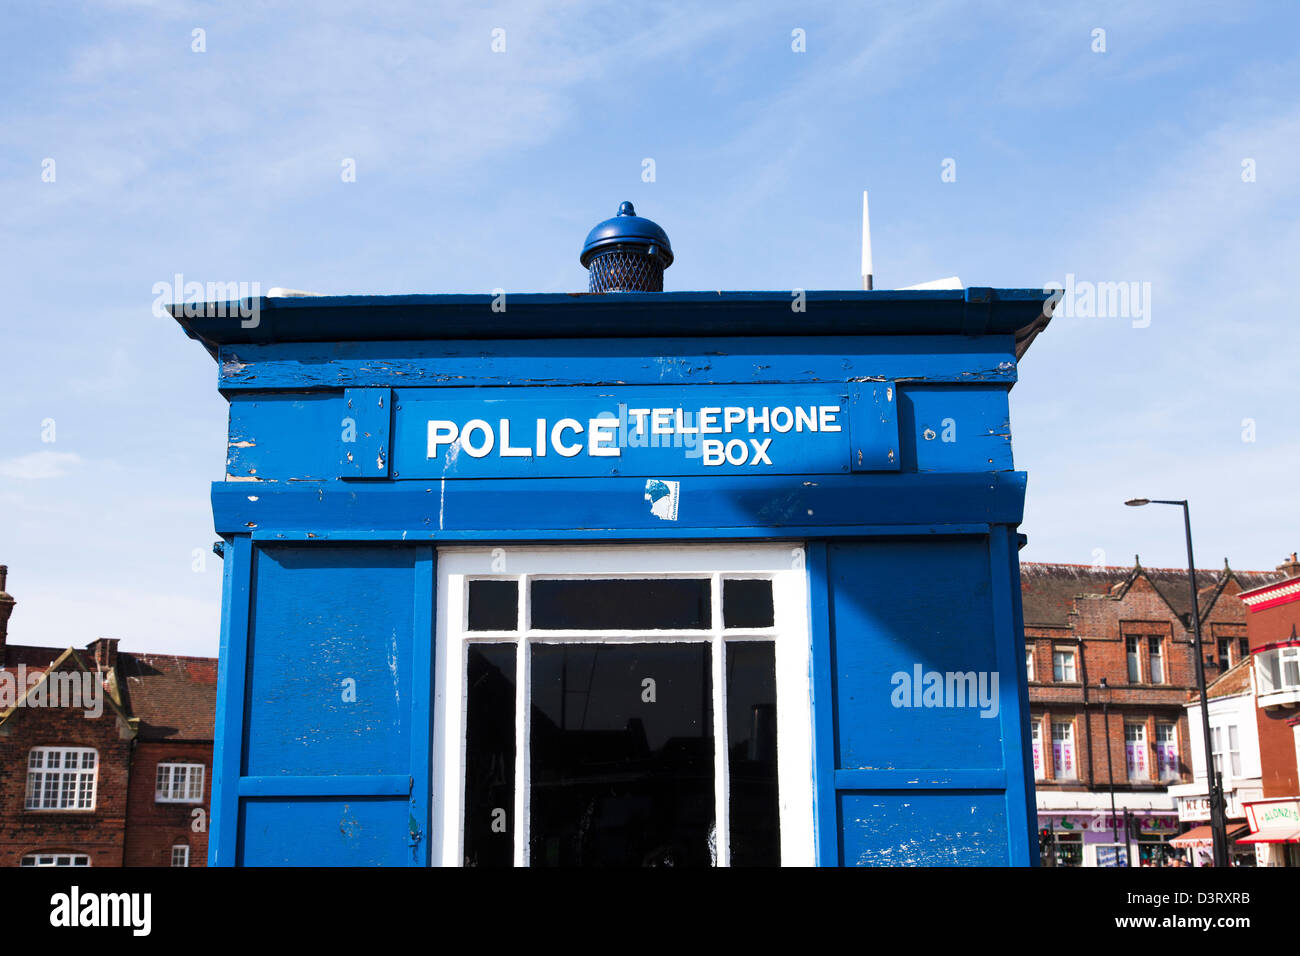 An old police telephone box in the UK. - Stock Image